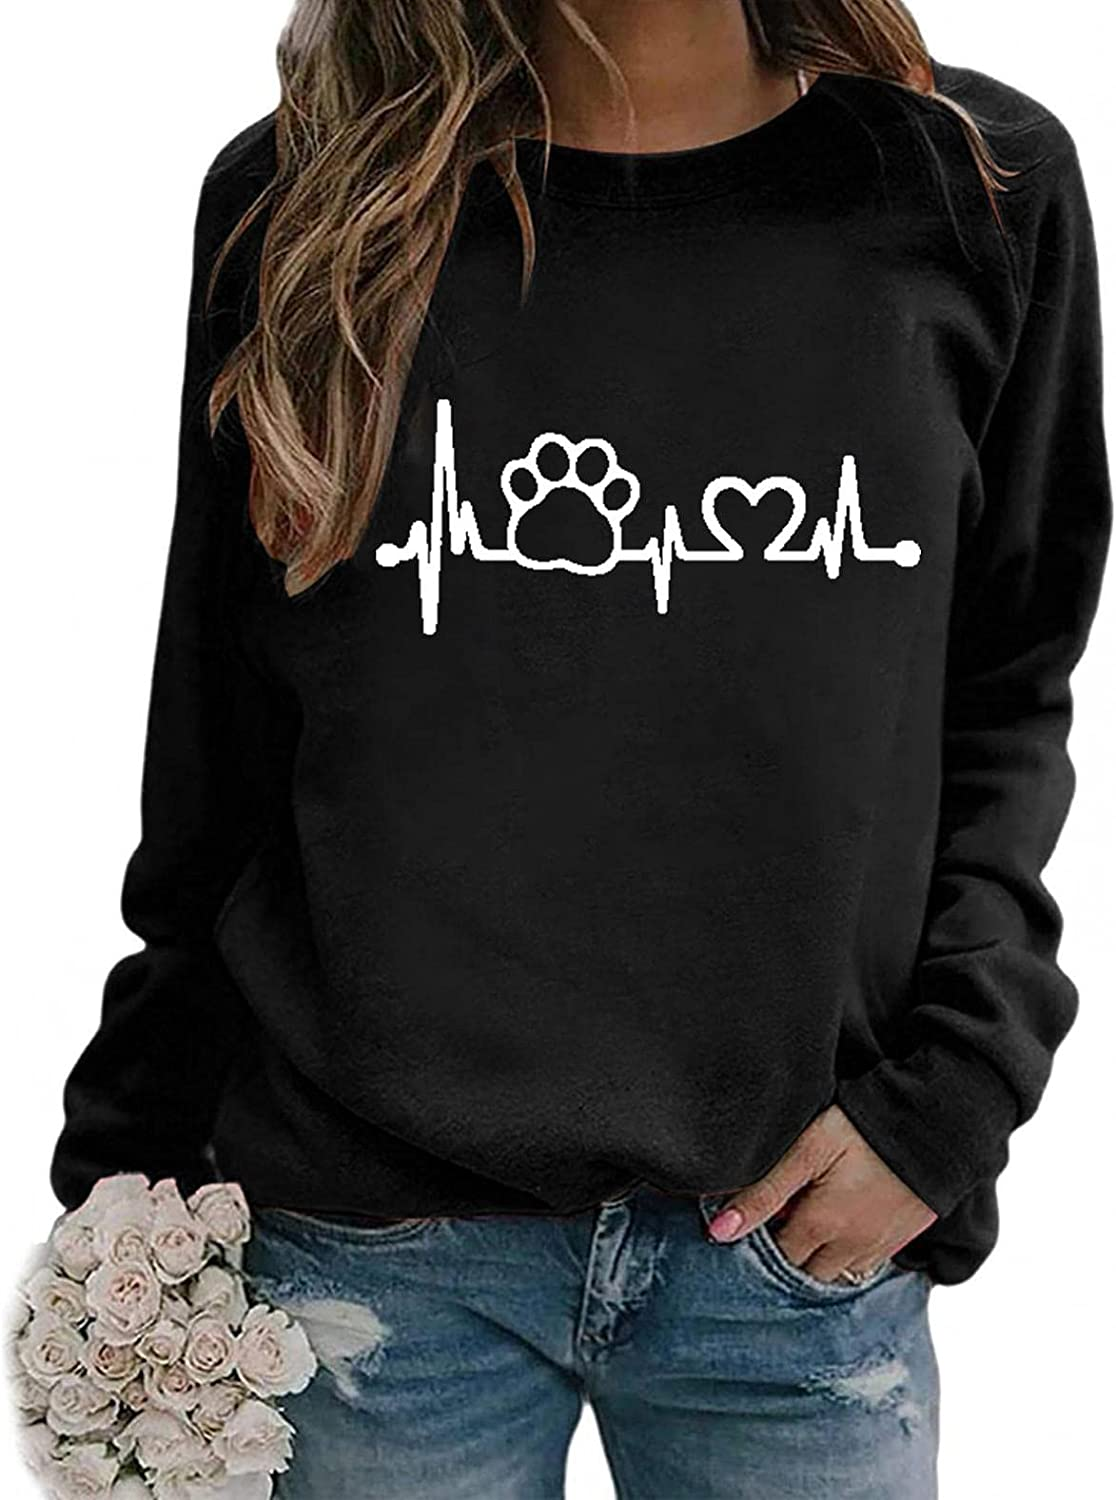 Toeava Long Sleeve Shirts for Women Casual Graphic Sweatshirts Tee Shirts Paw Heartbeat Crew Neck Pullover Tunic Tops